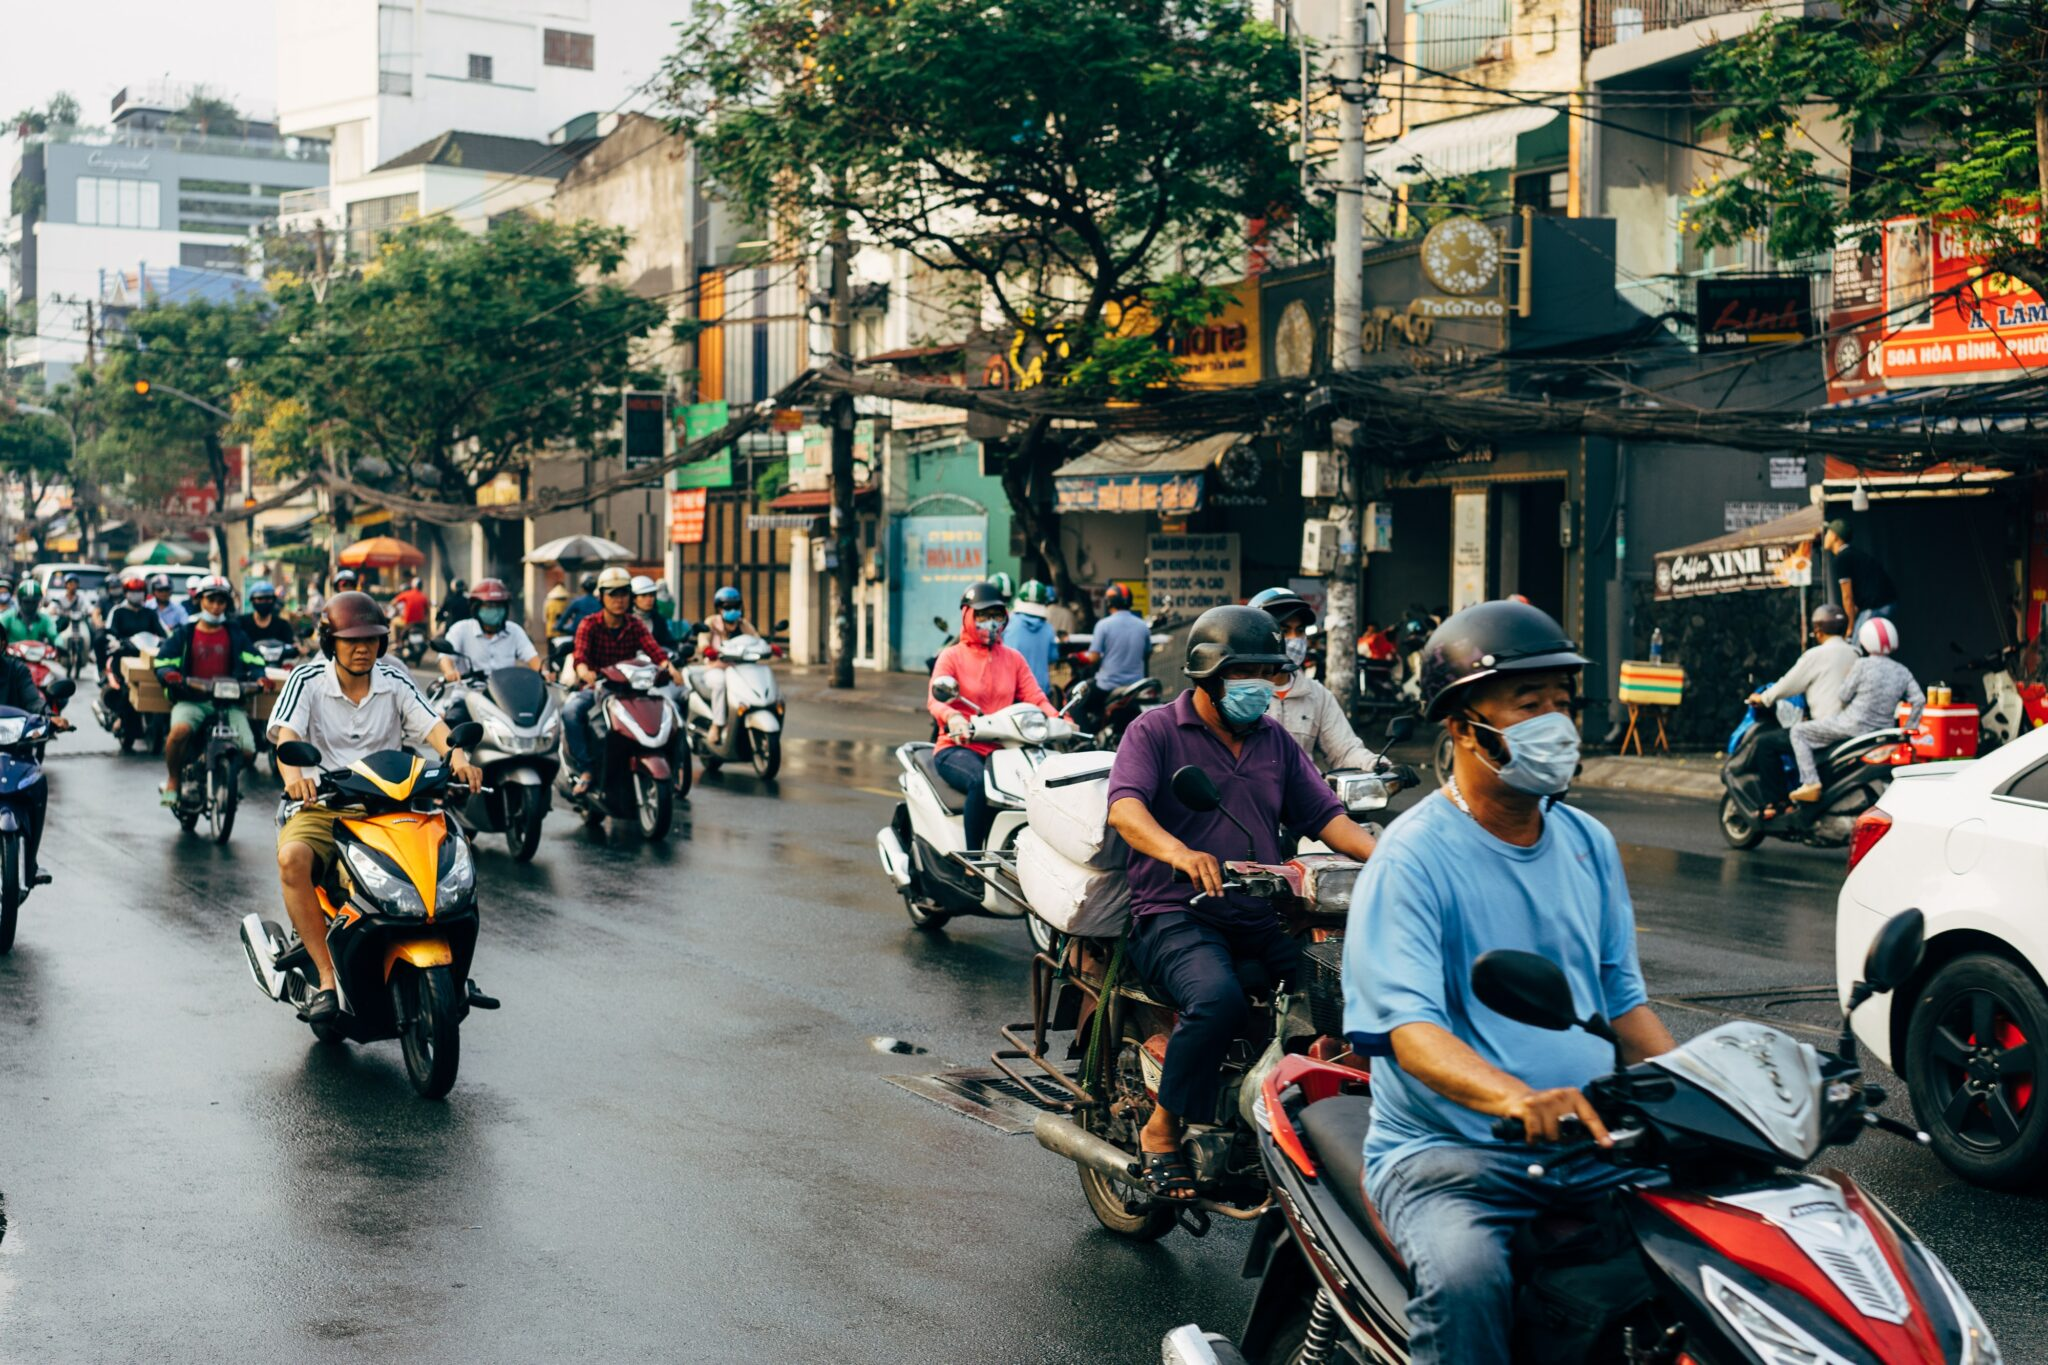 Motorcylists in Asia